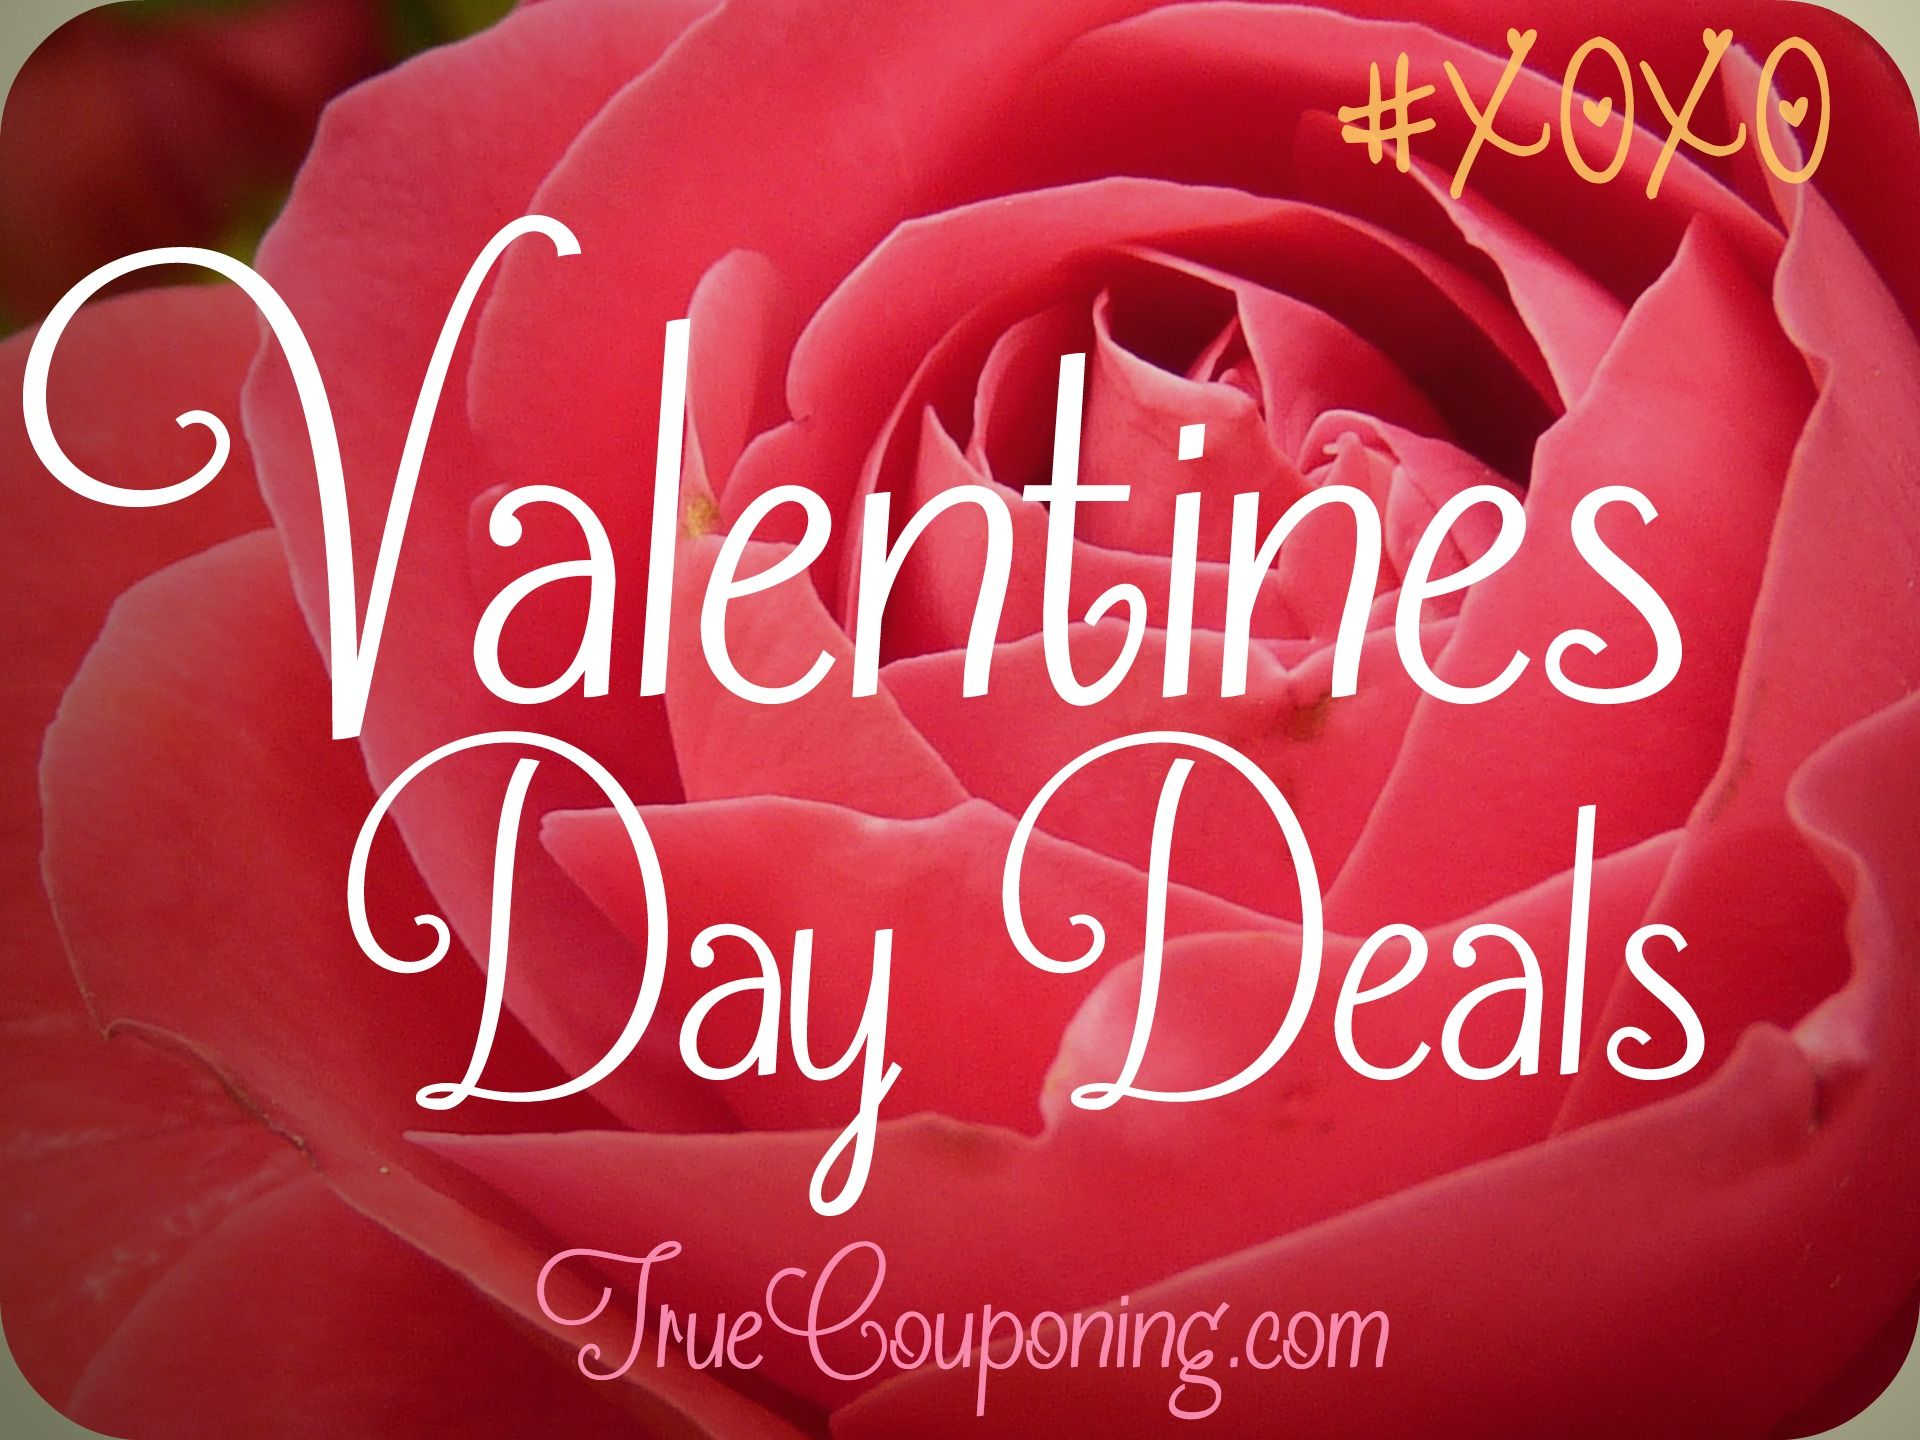 Valentine's Day FREEBies, Meal Deals & Super CHEAP Discounts!